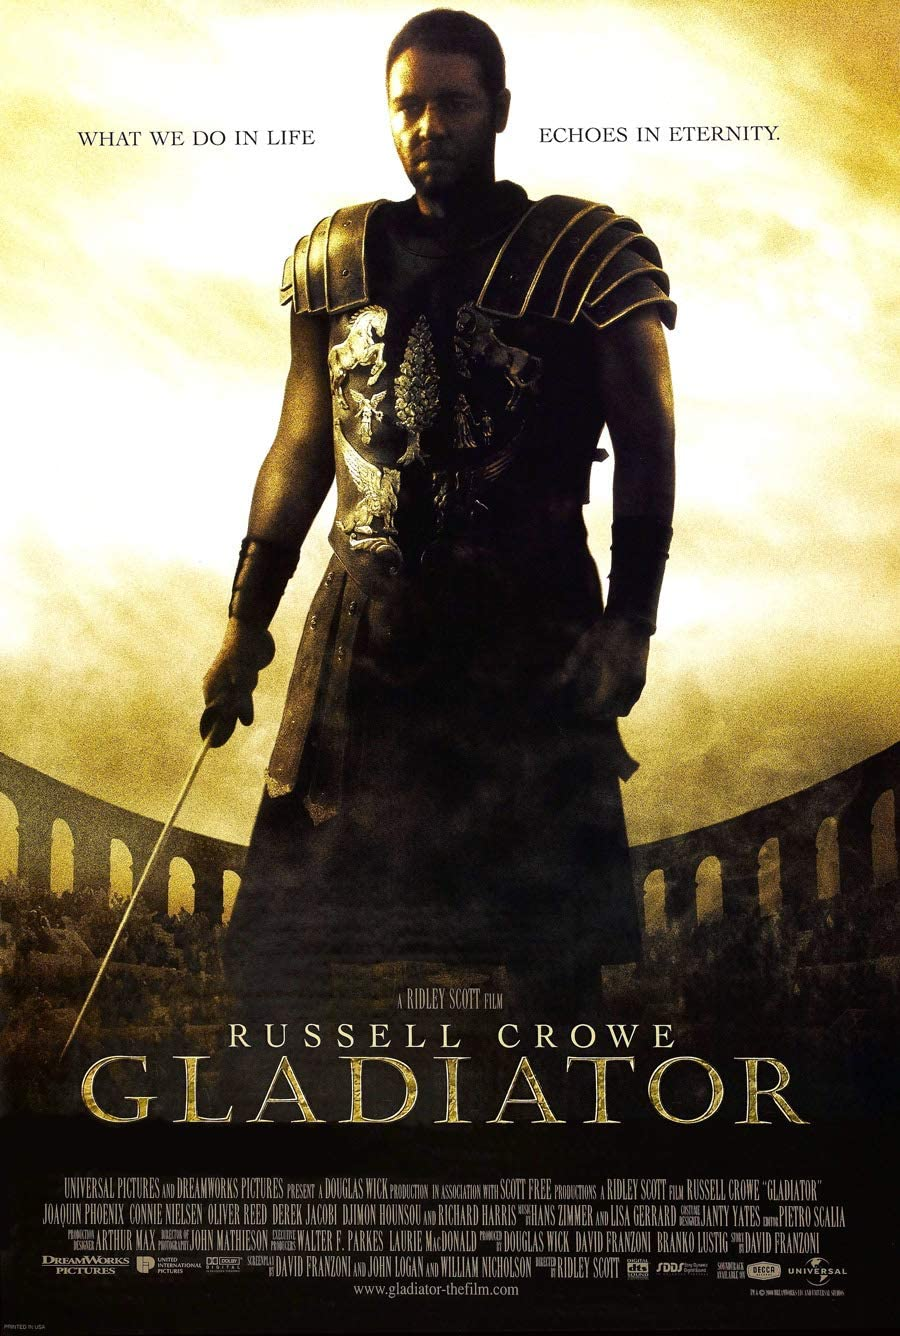 GLADIATOR MOVIE POSTER 2 Sided ORIGINAL We OFFer at cheap prices CROWE 27x40 RUSSELL Inventory cleanup selling sale